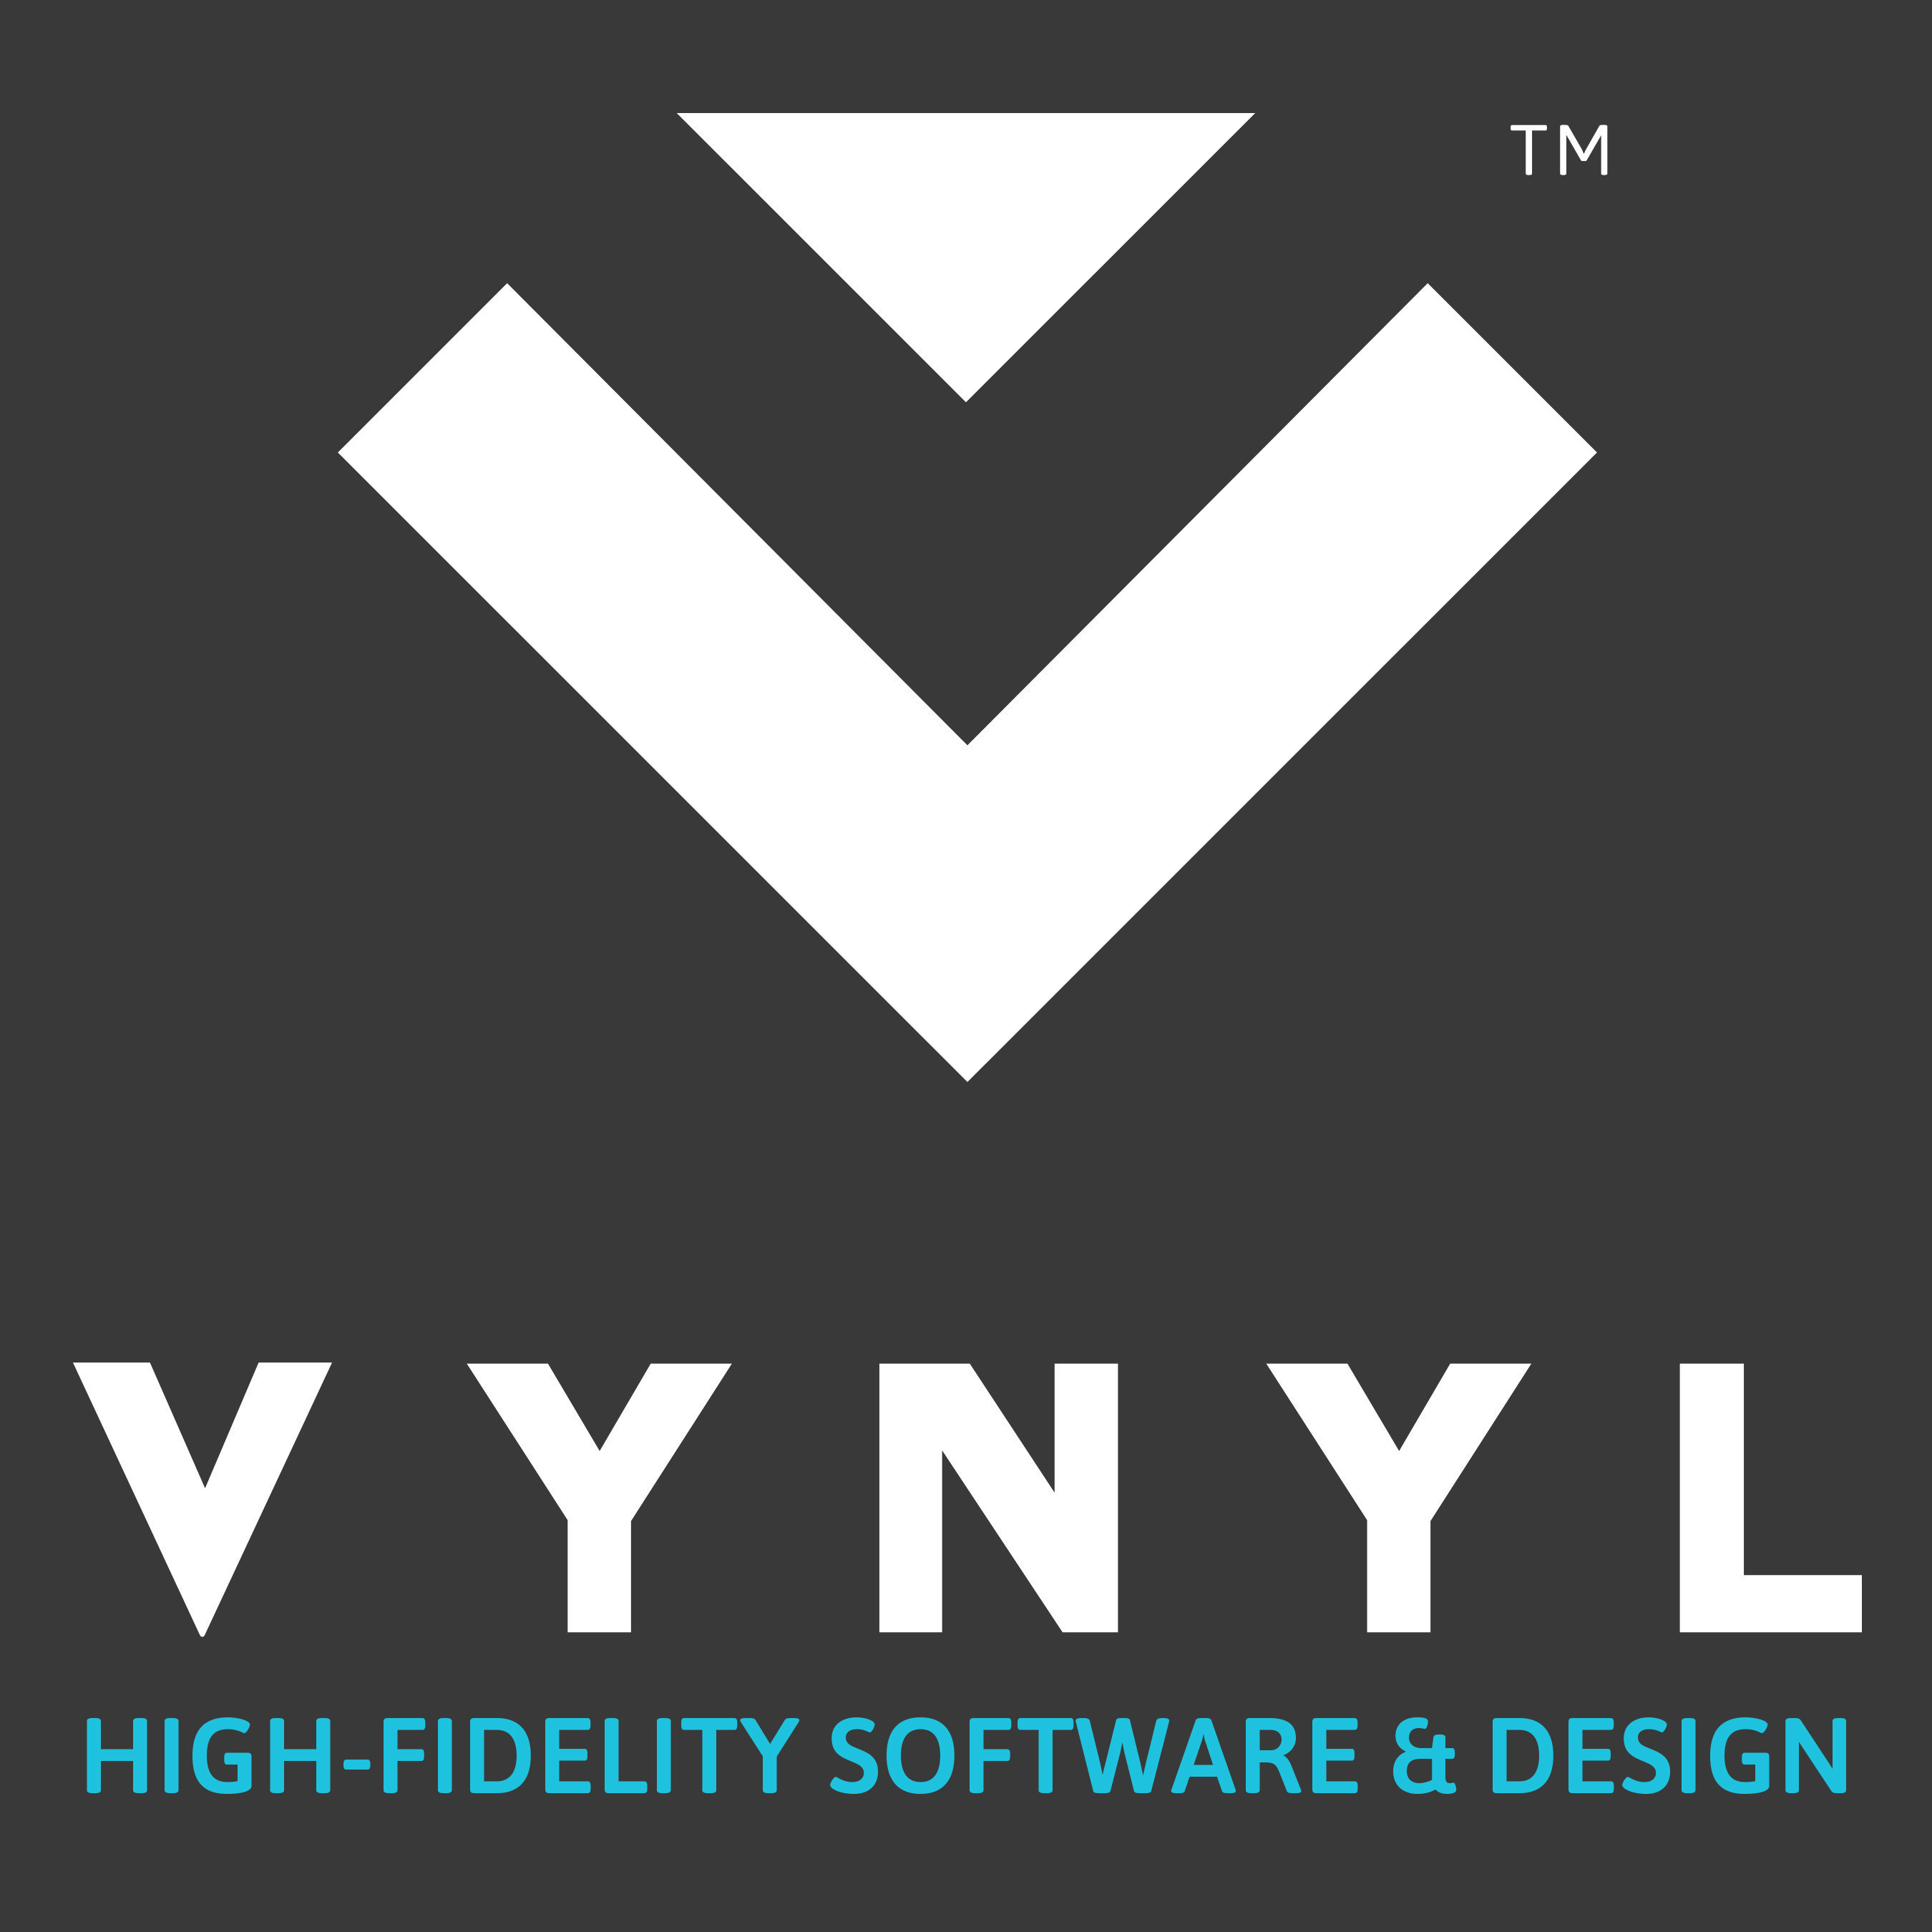 Vynyl launches, as three leading software development and design firms merge.